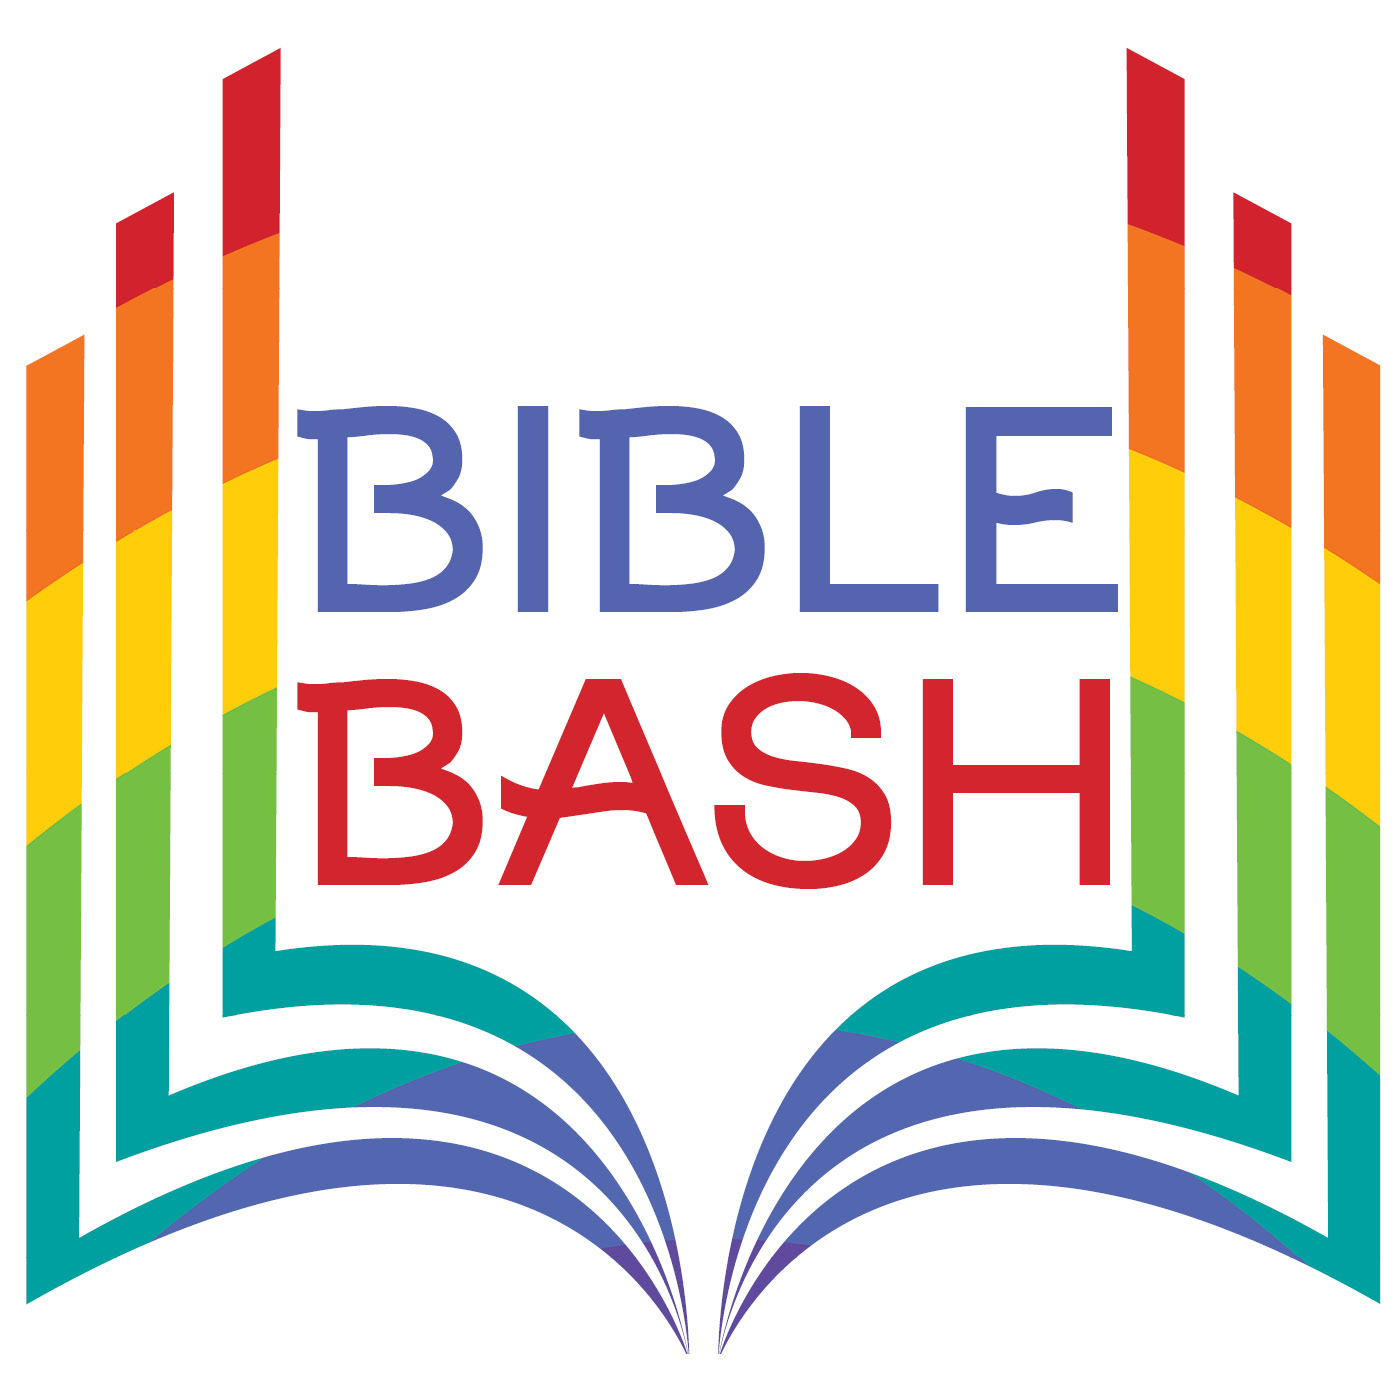 Bible Bash Podcast - A Northern Belle and a Southern Gentleman Discuss Bible Texts and Other Texts. Gay Bible scholar Peterson Toscano and Trans Bible Scholar Liam Hooper present queer readings of the Bible.